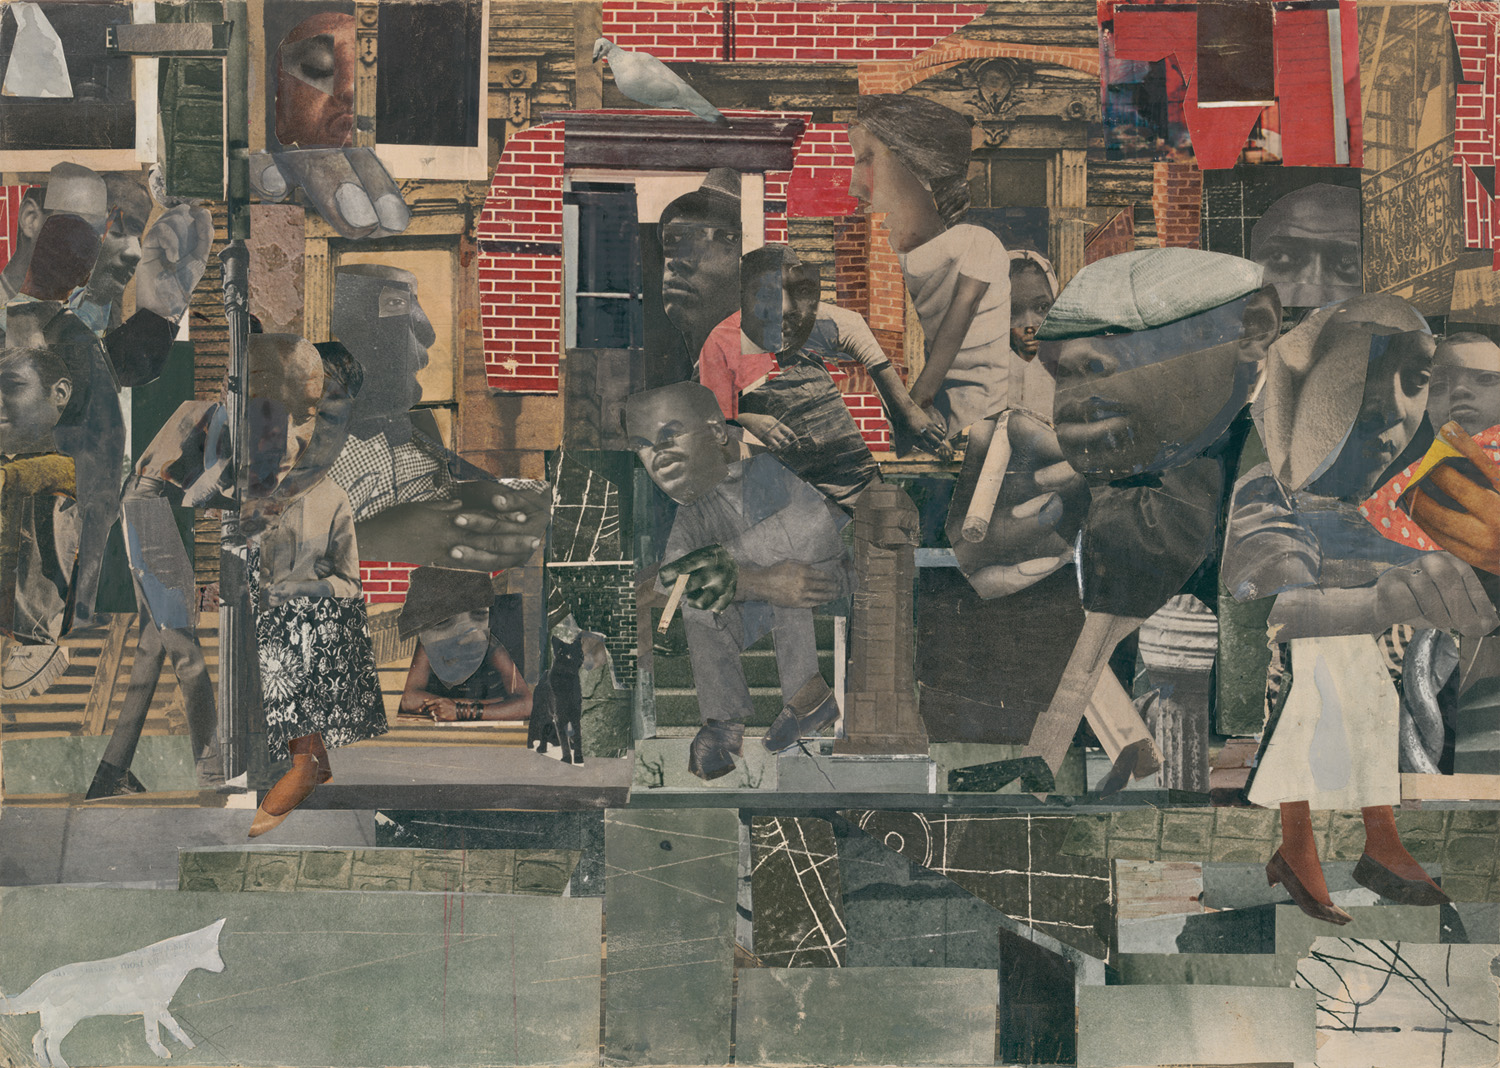 Conjure and Collapse in the Art of Romare Bearden | nonsite.org